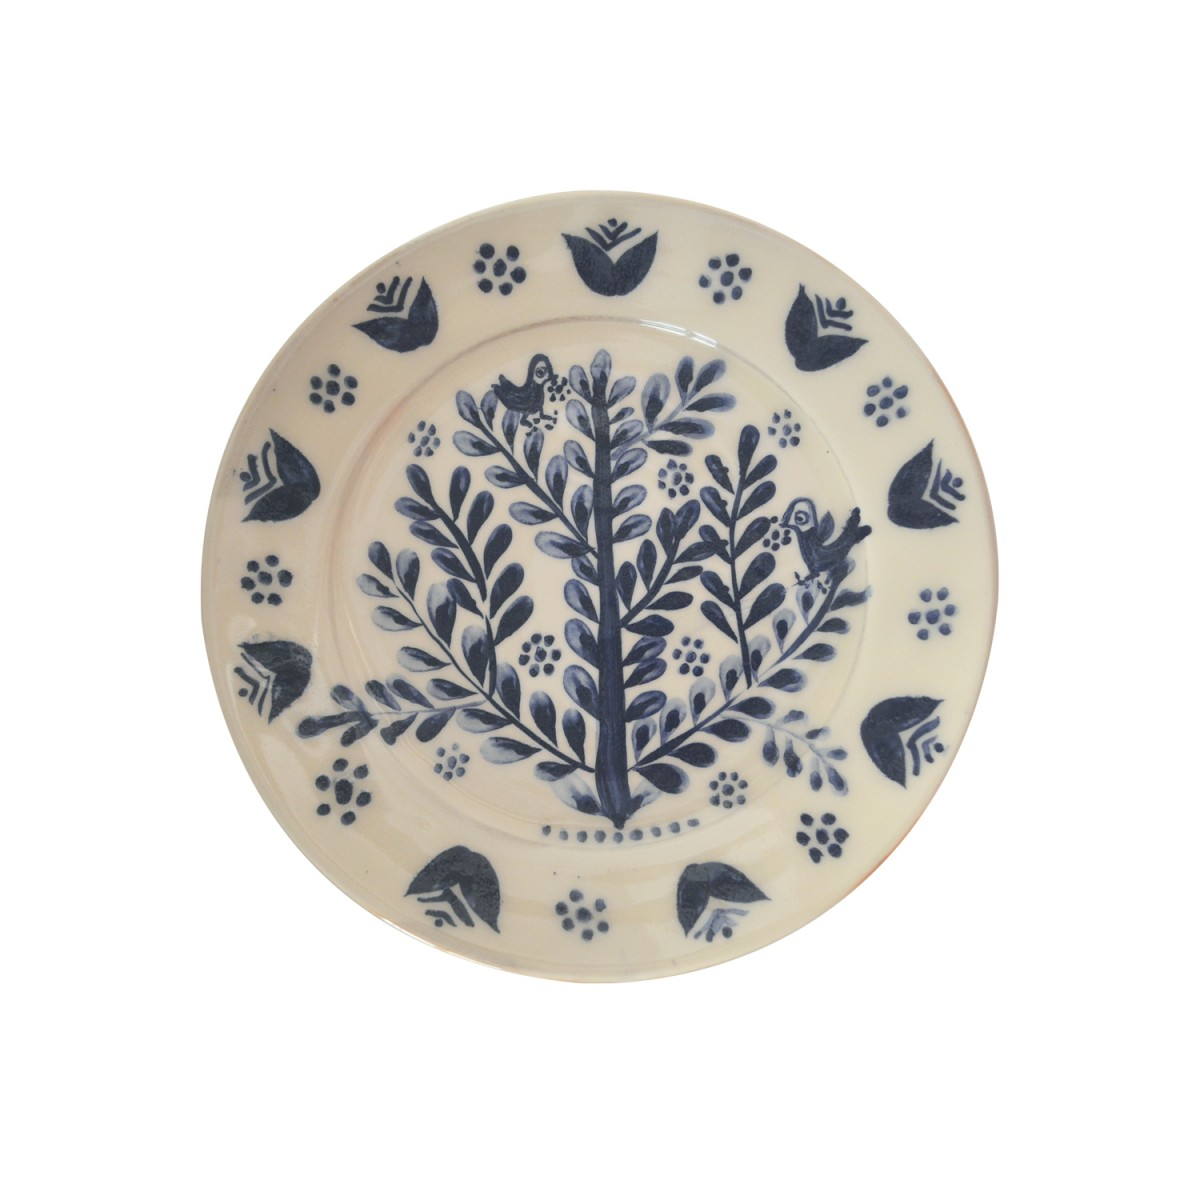 10011-Birds_on_Tree_Hand_Painted_Ceramic_Plate-1